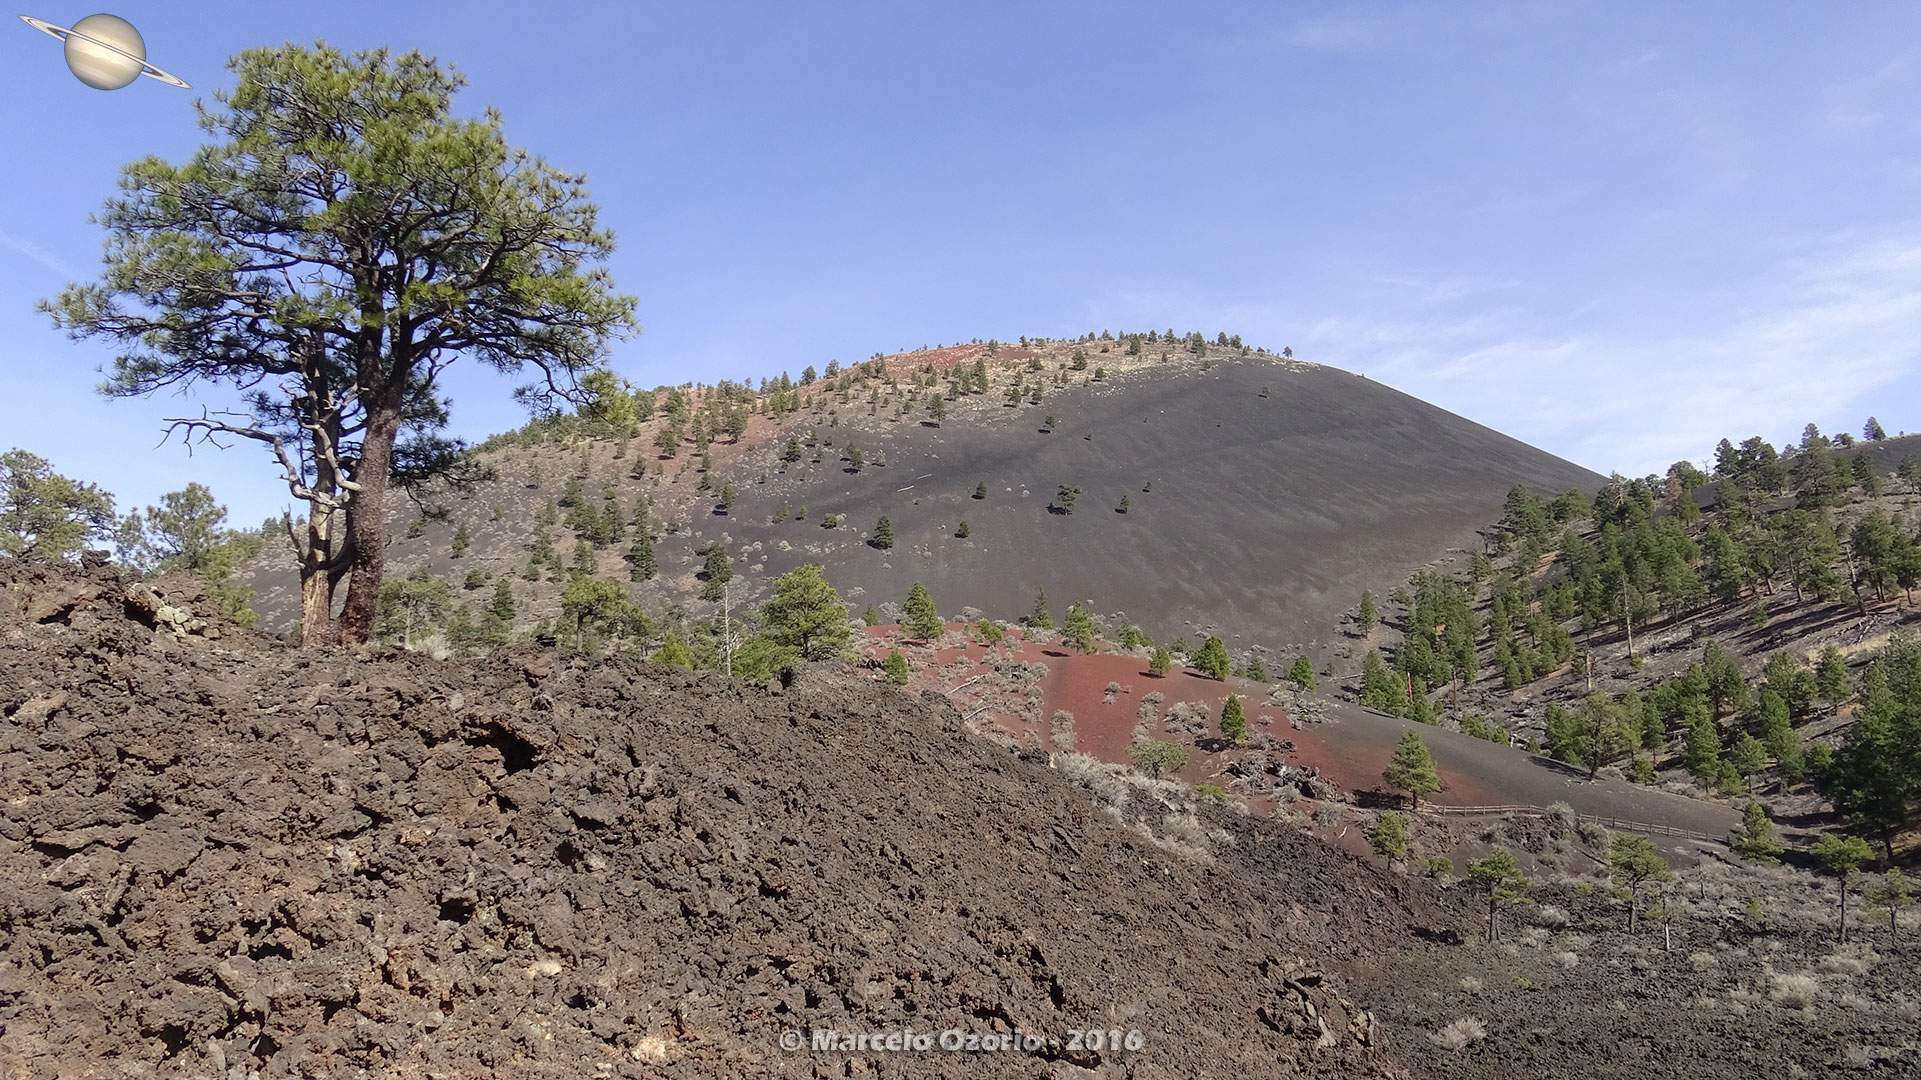 Sunset Crater Volcano Arizona 29 - Frozen Lava Fields at Sunset Crater Volcano - Arizona